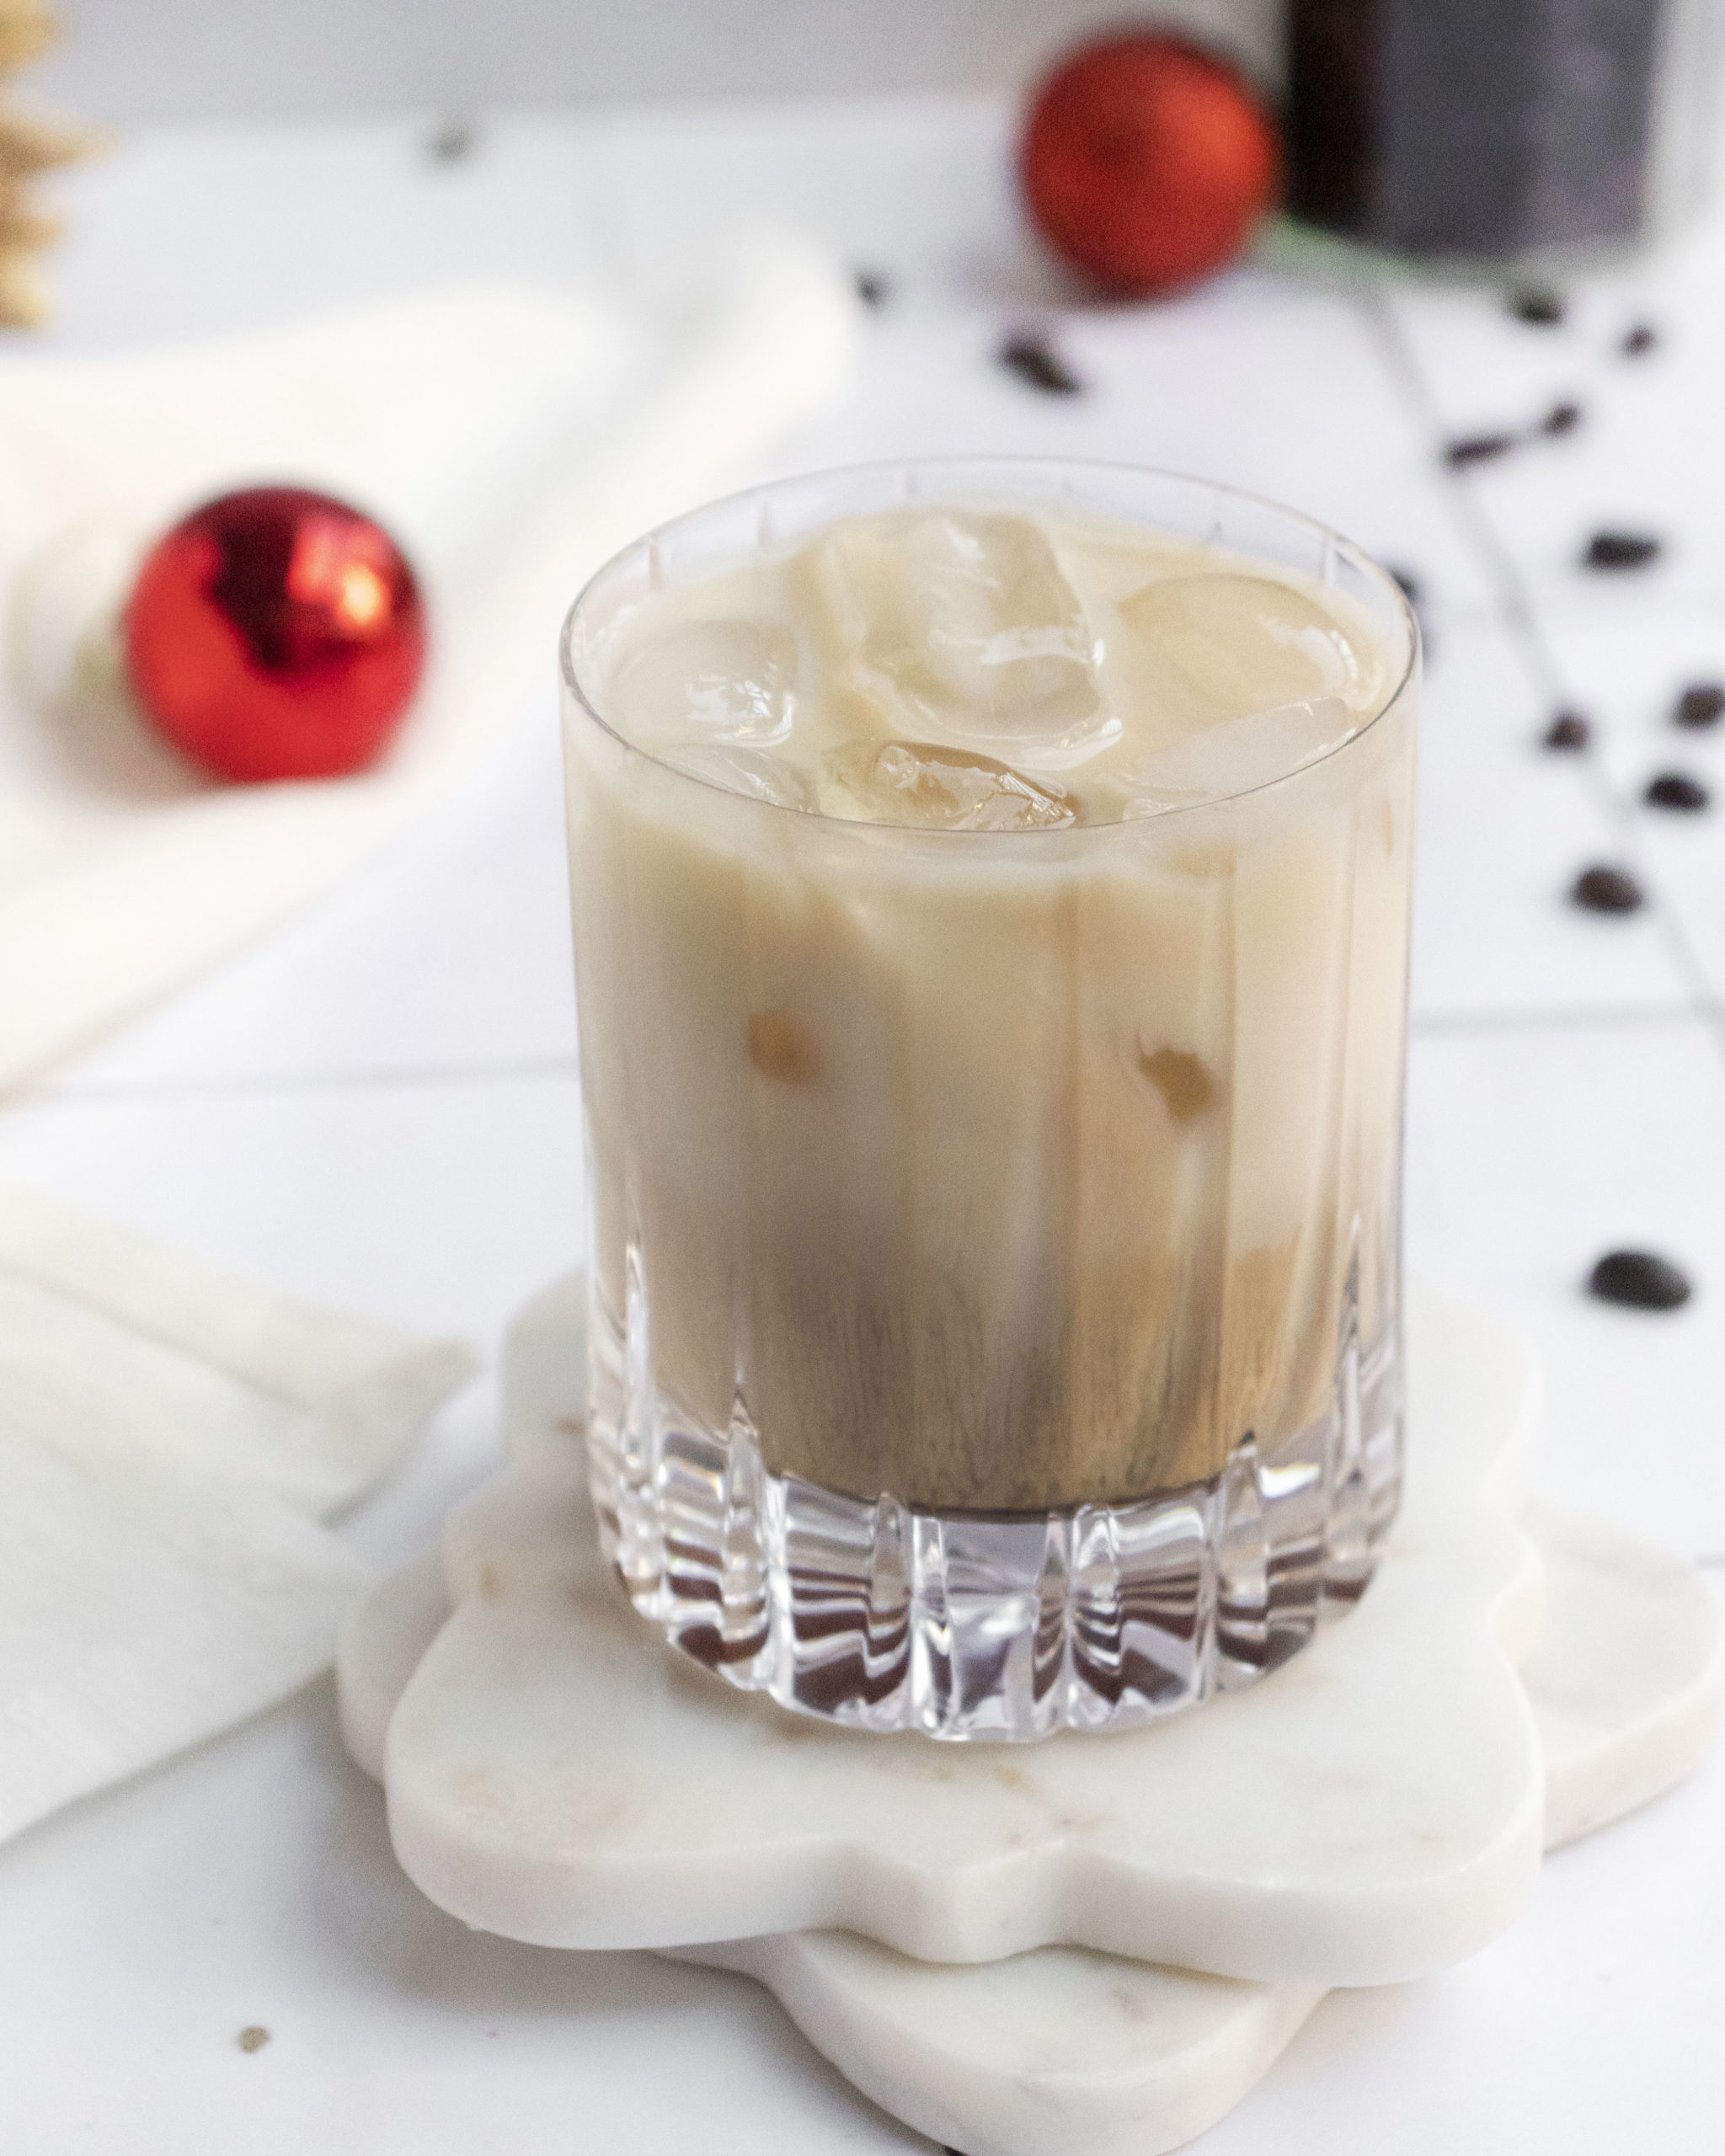 the finished baileys white russian cocktail